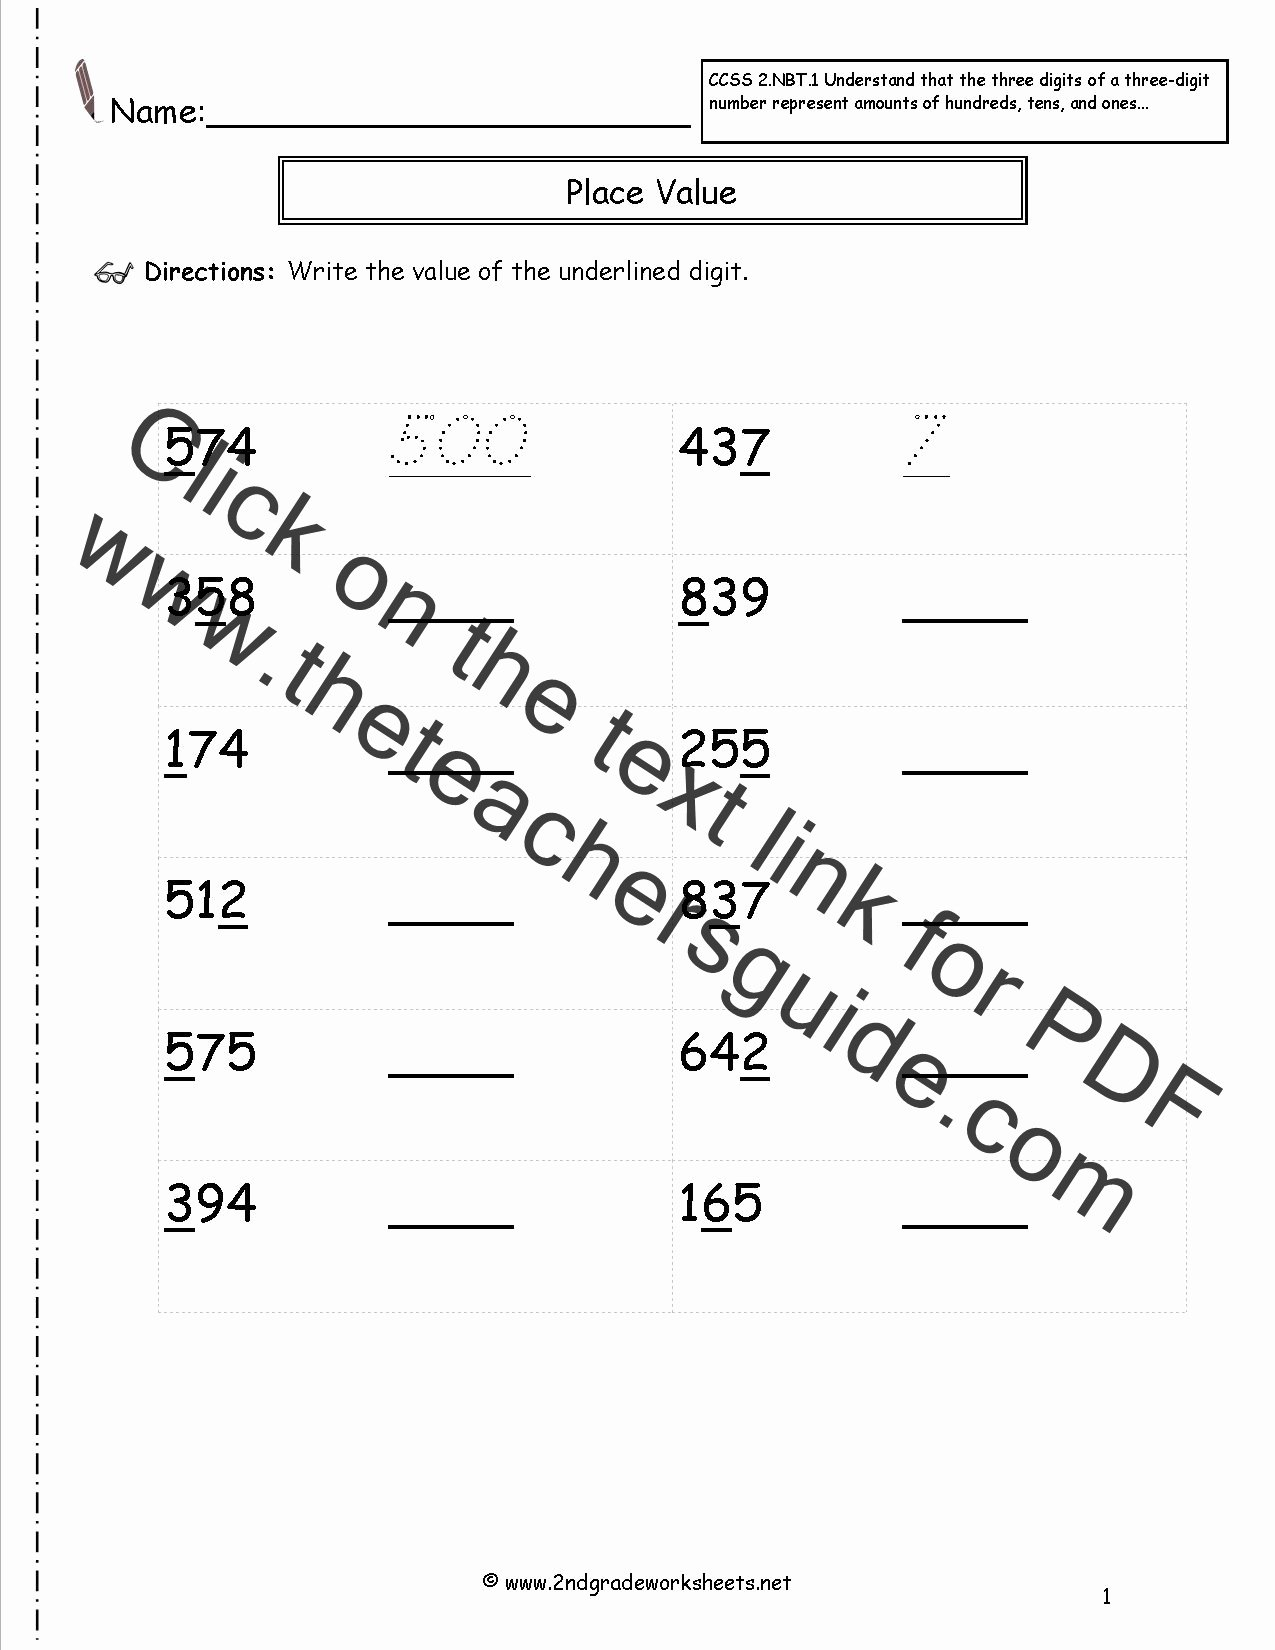 Common Core Worksheets Place Value New Ccss 2 Nbt 1 Worksheets Place Value Worksheets